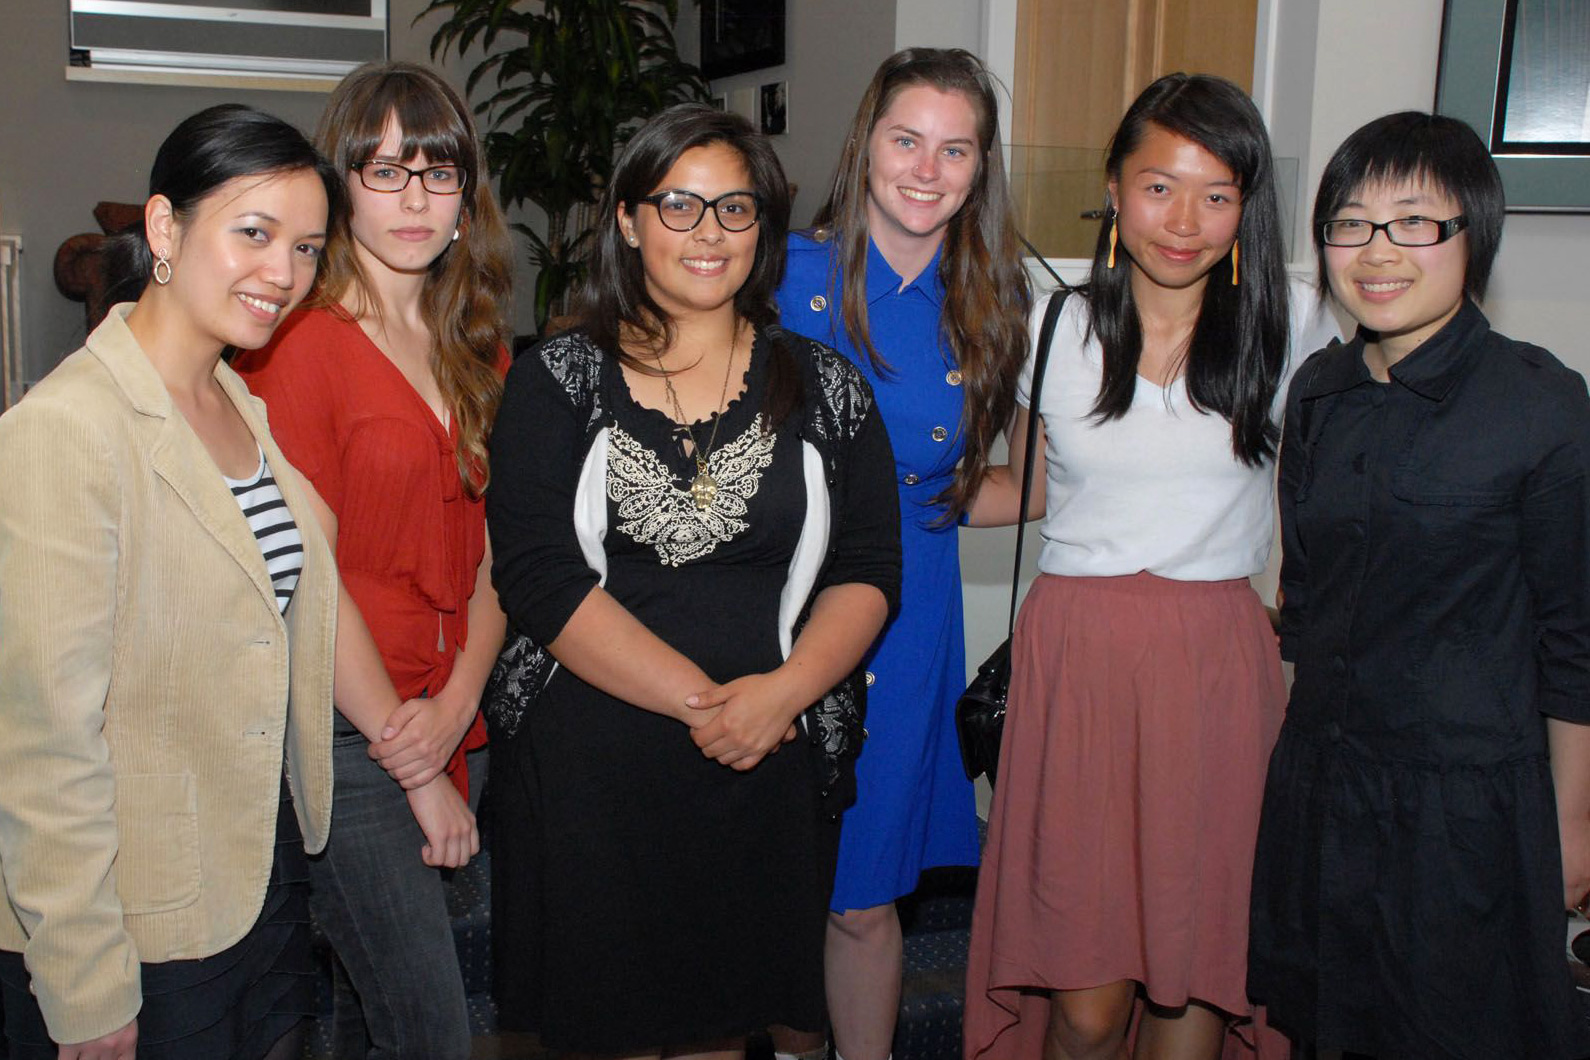 These six accomplished and promising young artists were awarded Sausalito Art Festival Foundation scholarships of $2,500 to support their studies and work.